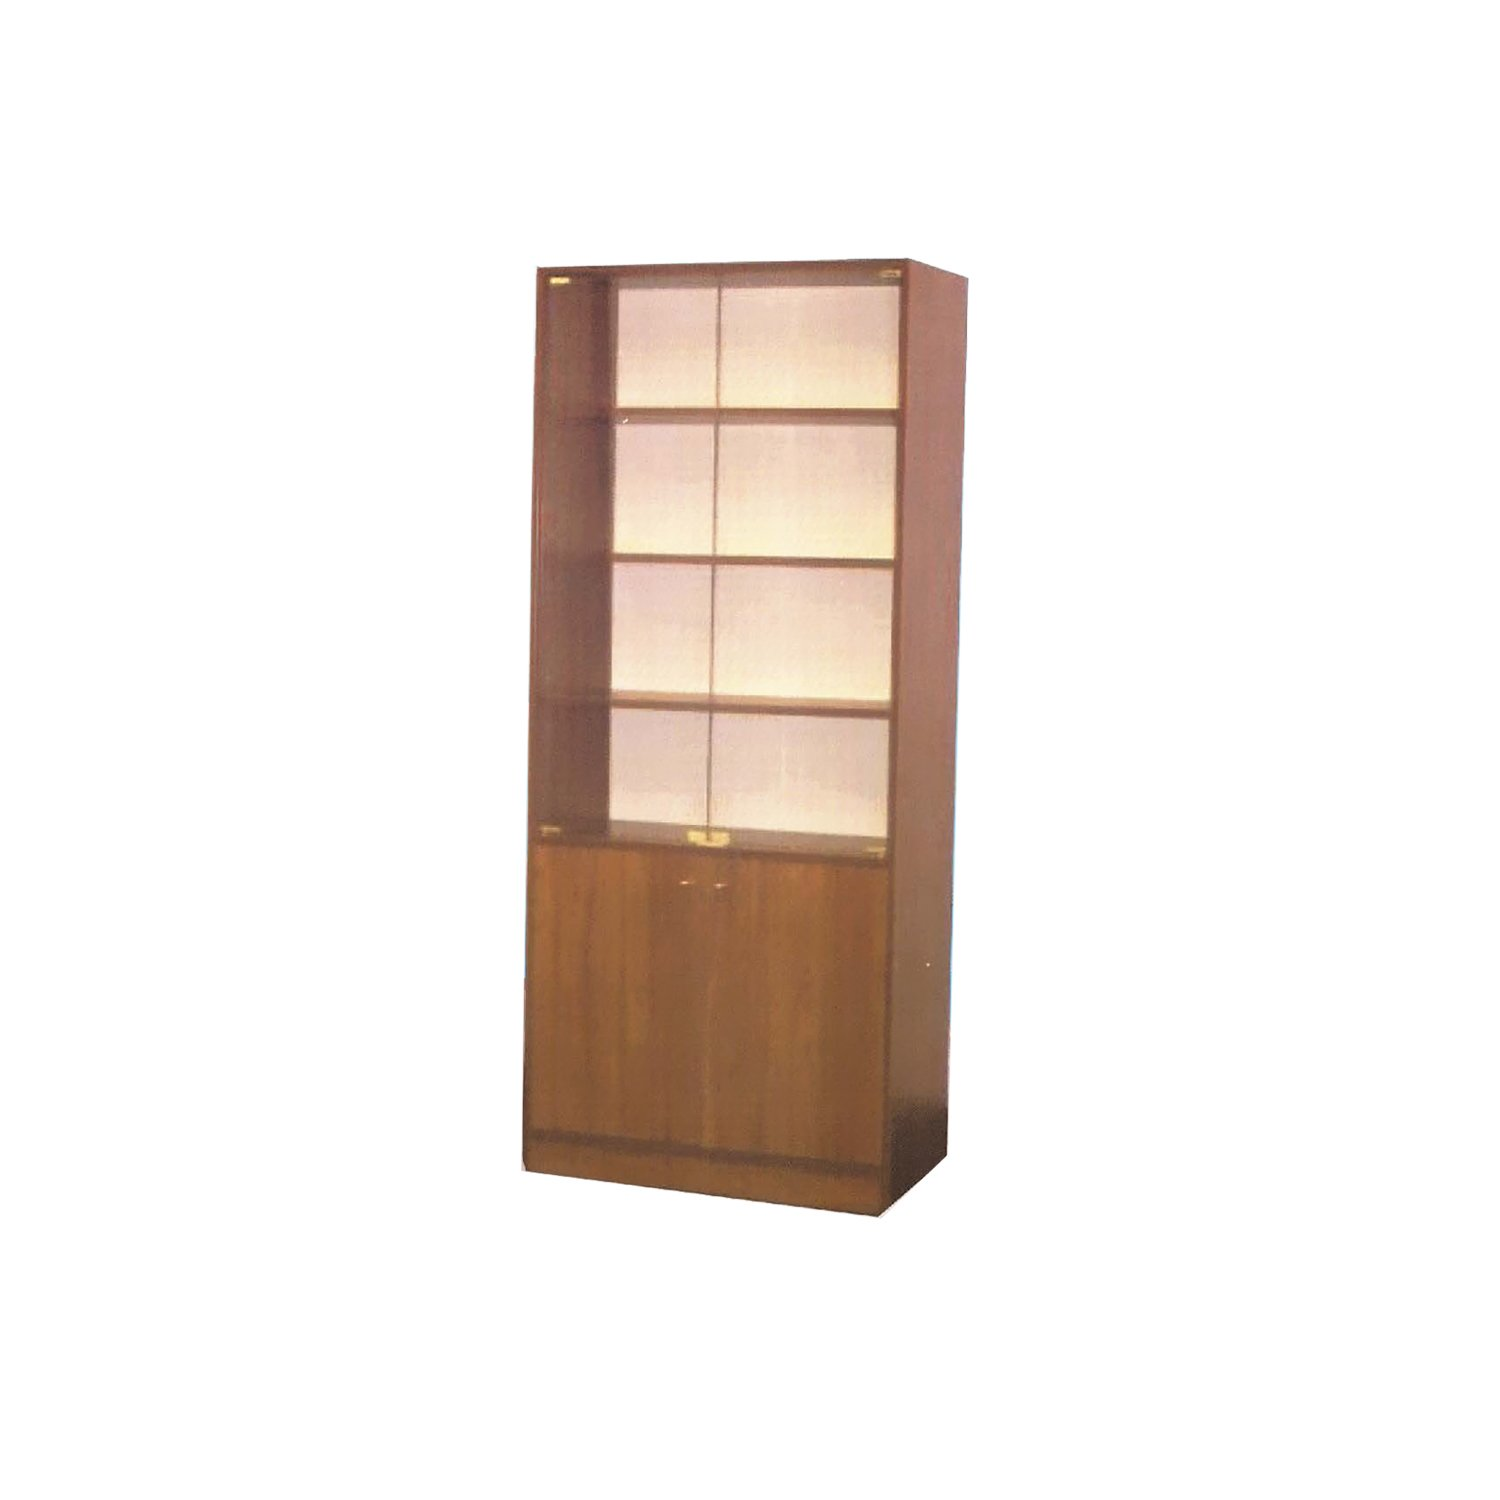 low priced d3a9b f319f BK-18 Brown Wooden Bookcase w/ 2 Glass Door by Central Furniture Factory